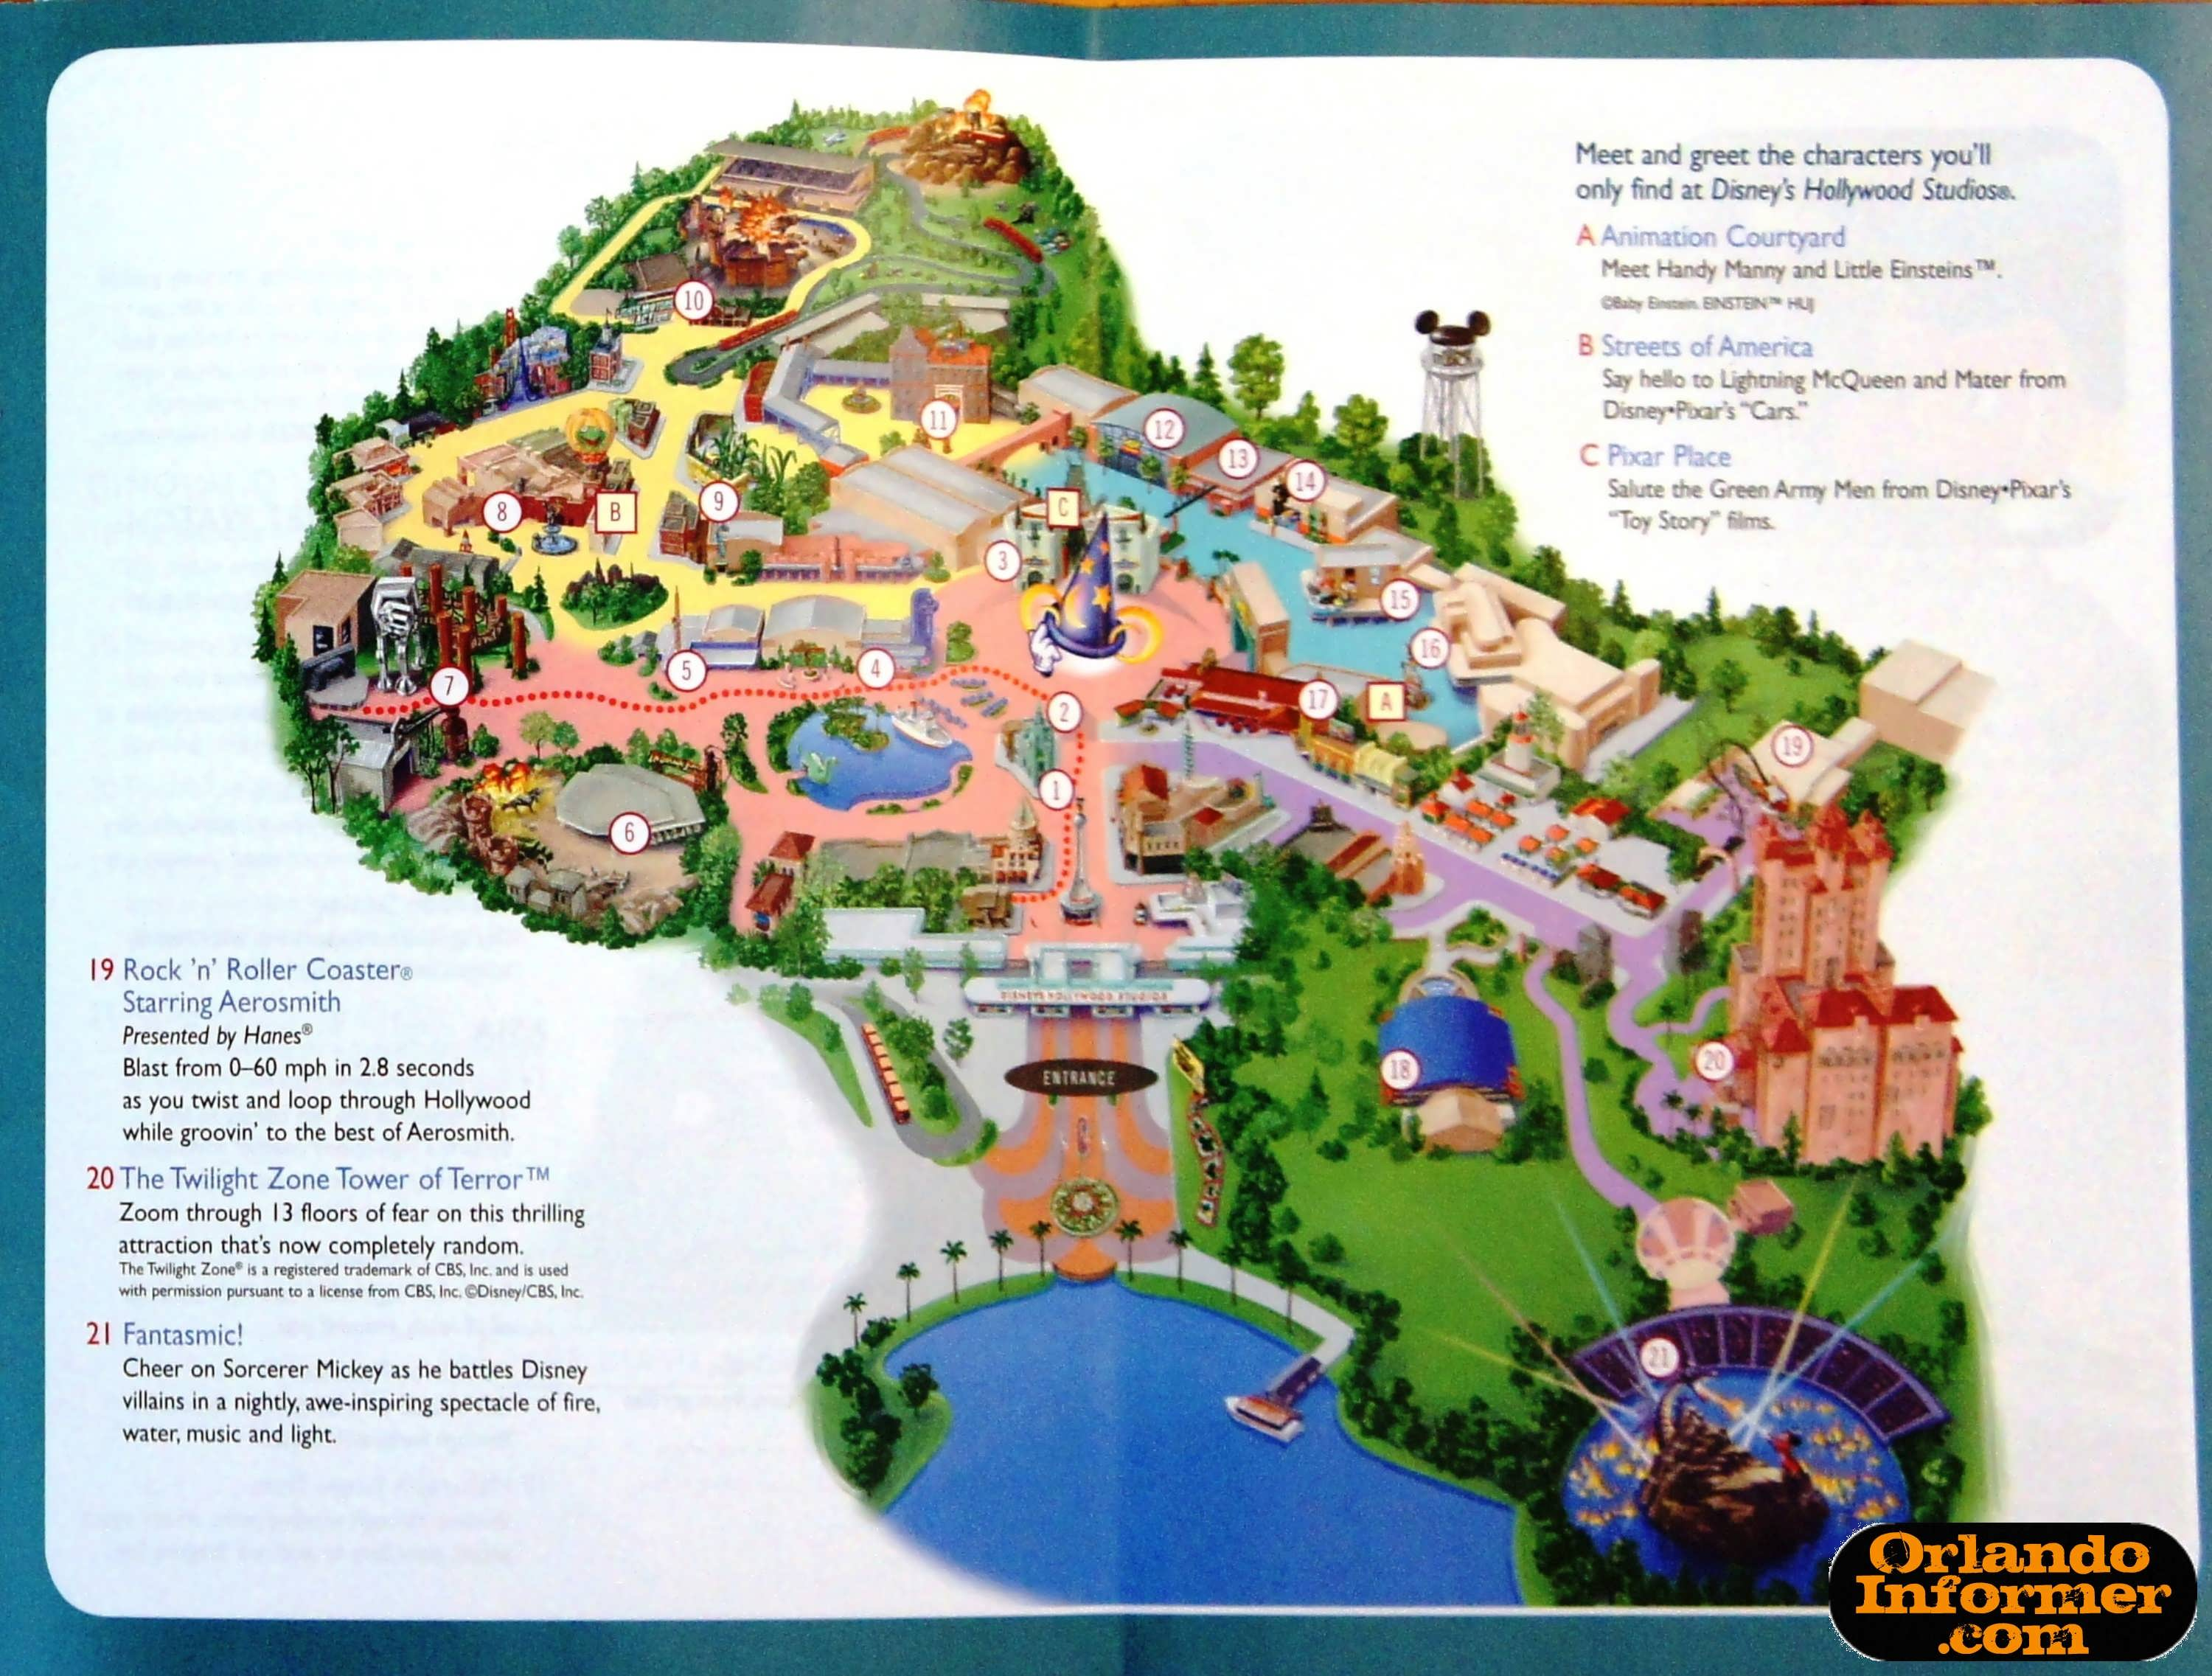 Disney Parks In Florida Map - The Best Picture Park In The World